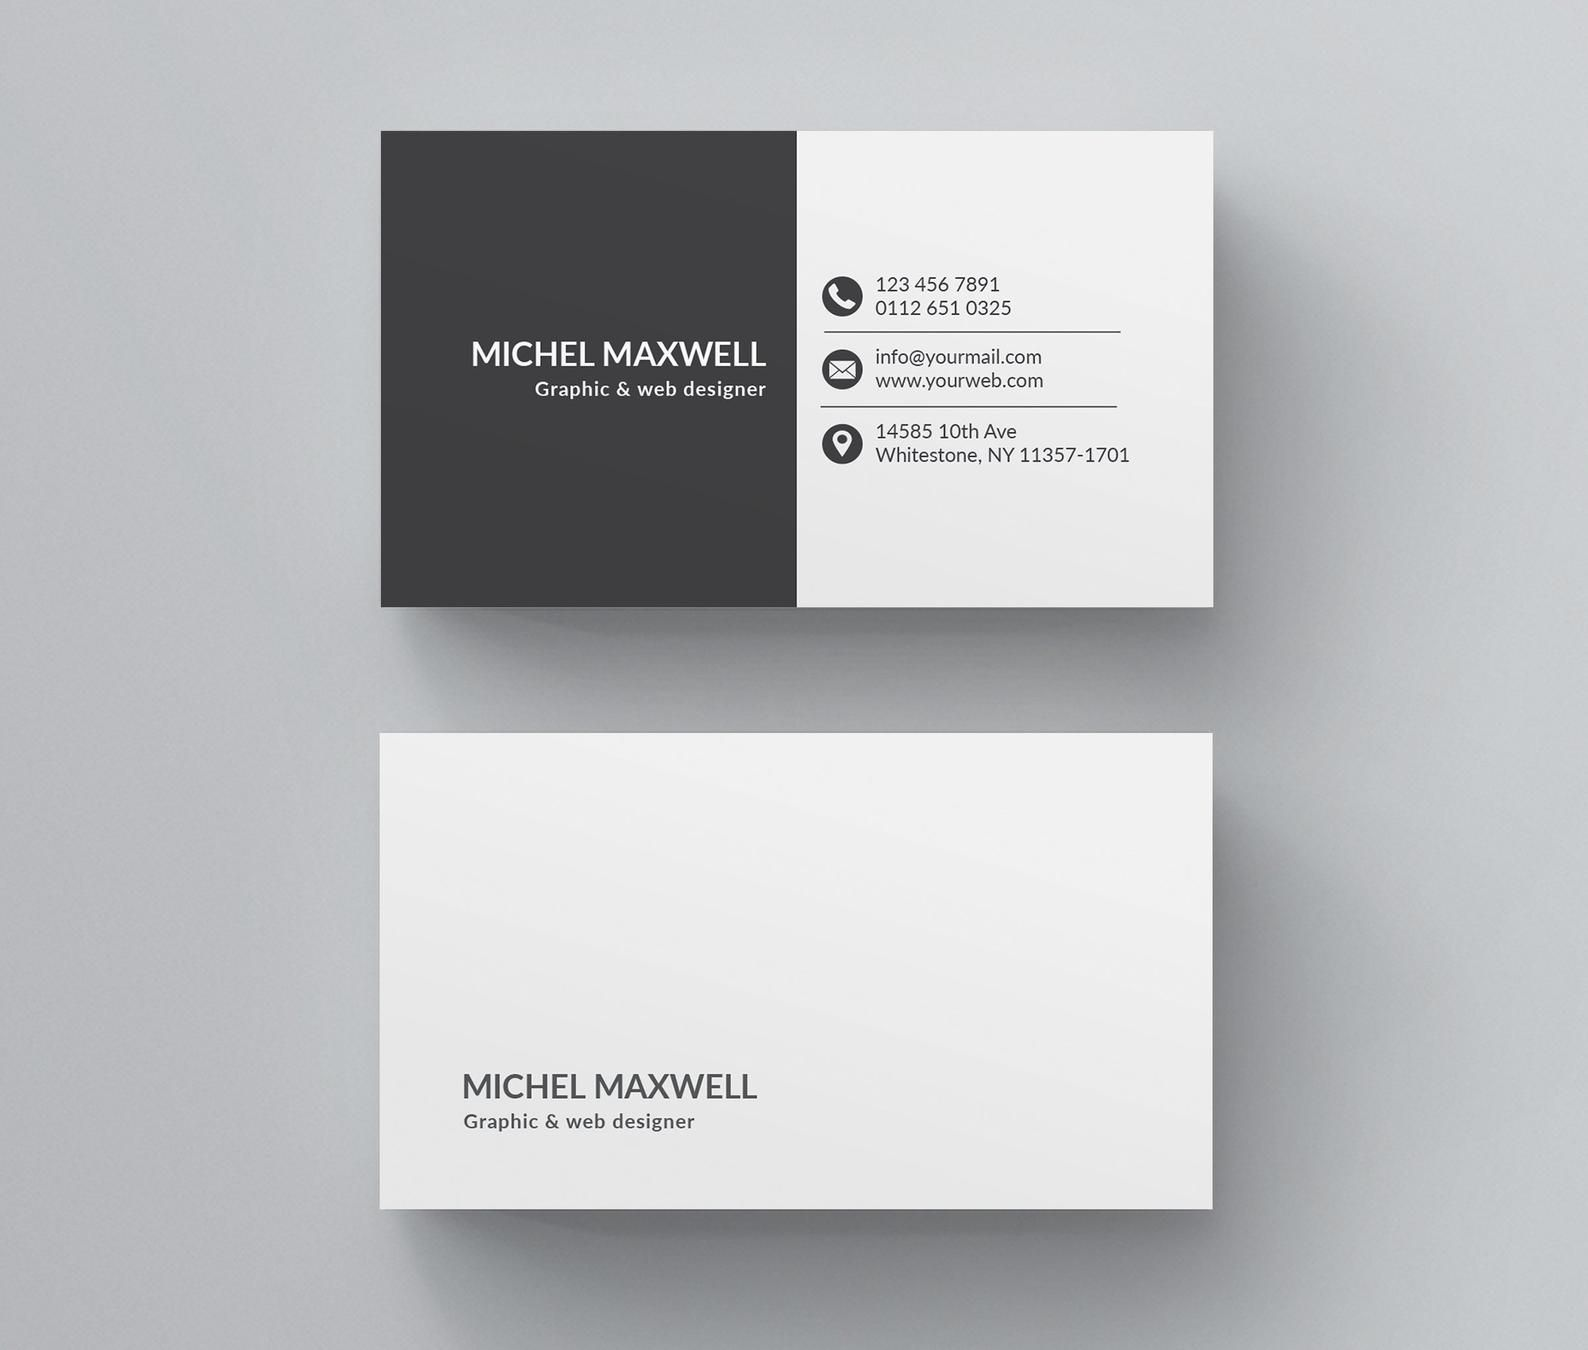 Business Card Word Business Card Template Business Card Etsy In 2021 Business Card Wording Business Card Template Business Card Maker